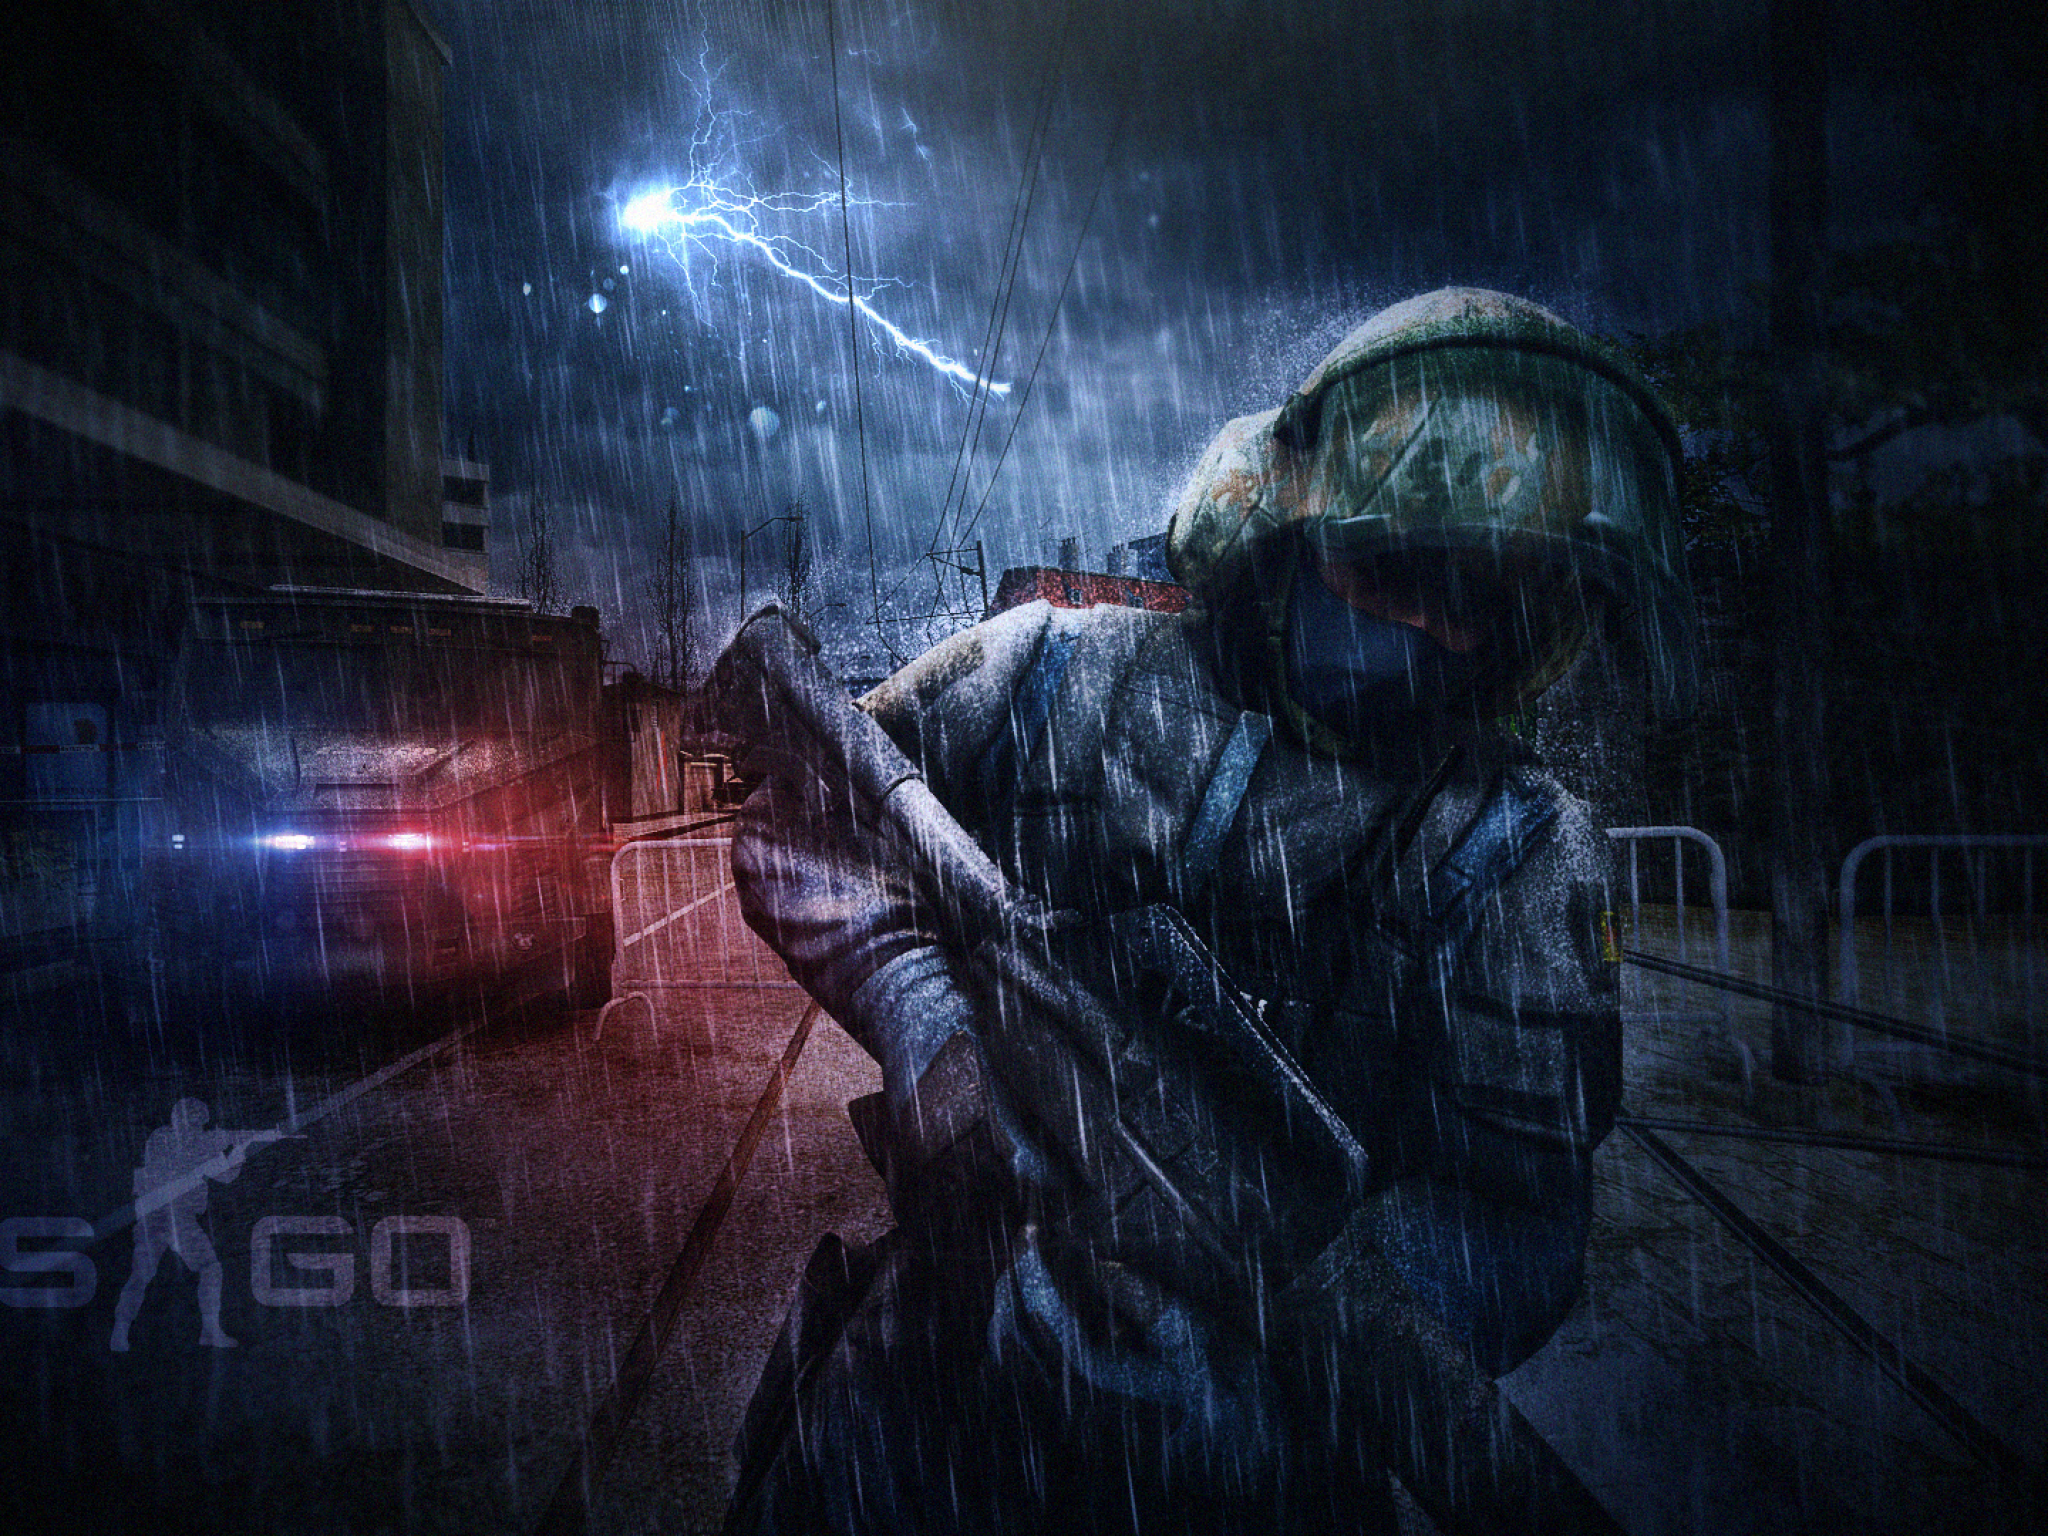 2048x1536 Download 2048x1536 Counter Strike Global Offensive, Cs:go ...